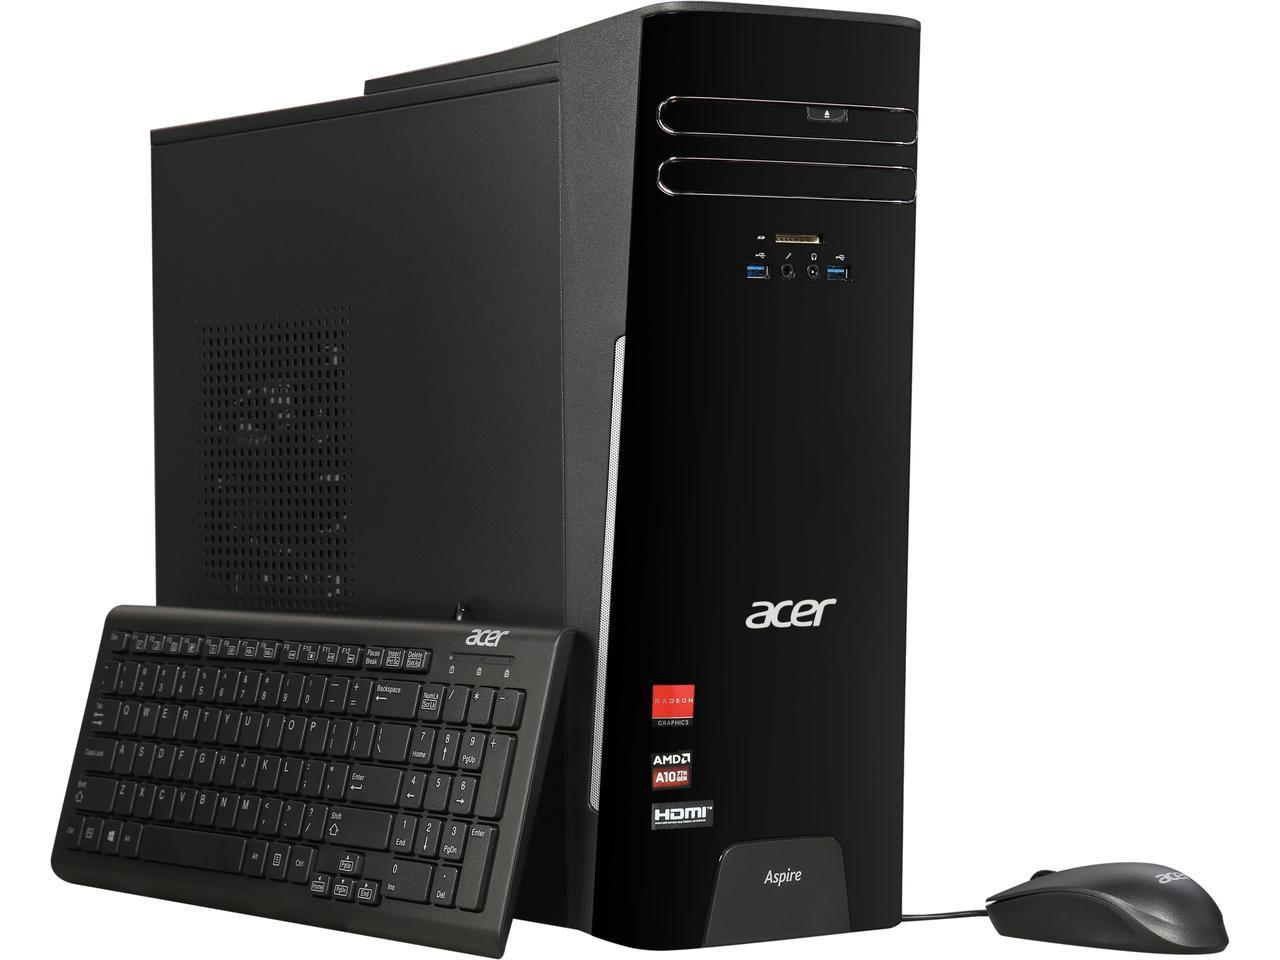 Acer Aspire TC-281-UR12 Desktop with AMD Quad Core A10-9700 / 12GB / 1TB / Win 10